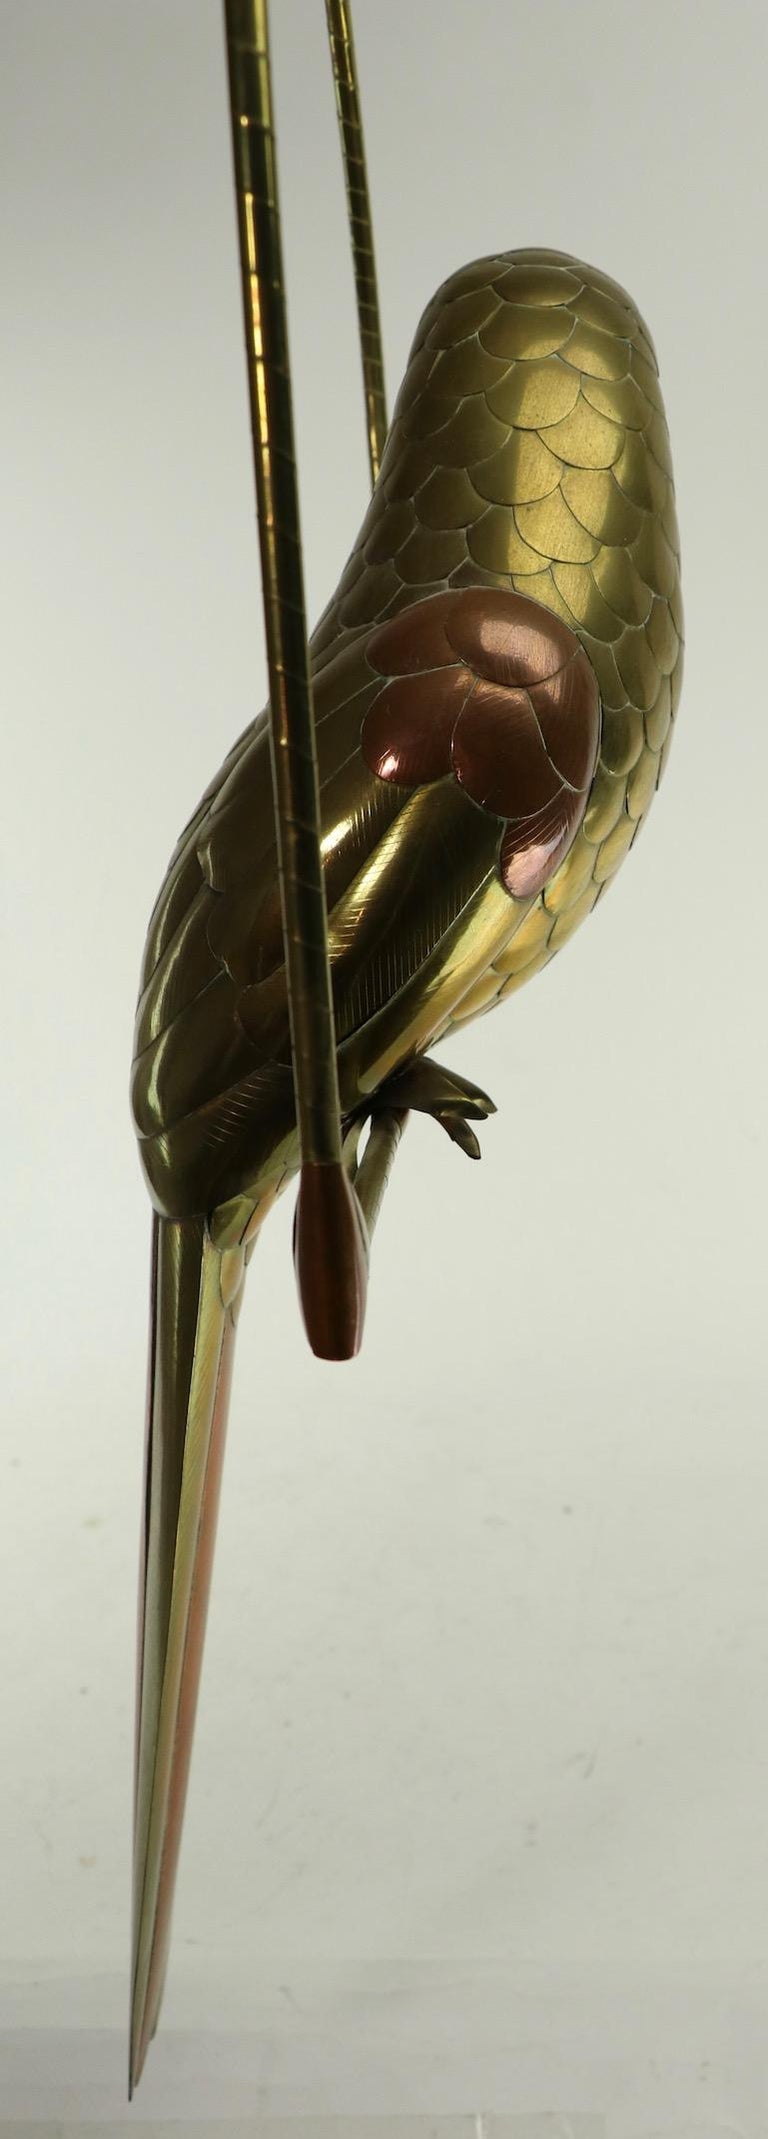 Mixed Metal Bird Sculpture by Sergio Bustamante For Sale 6